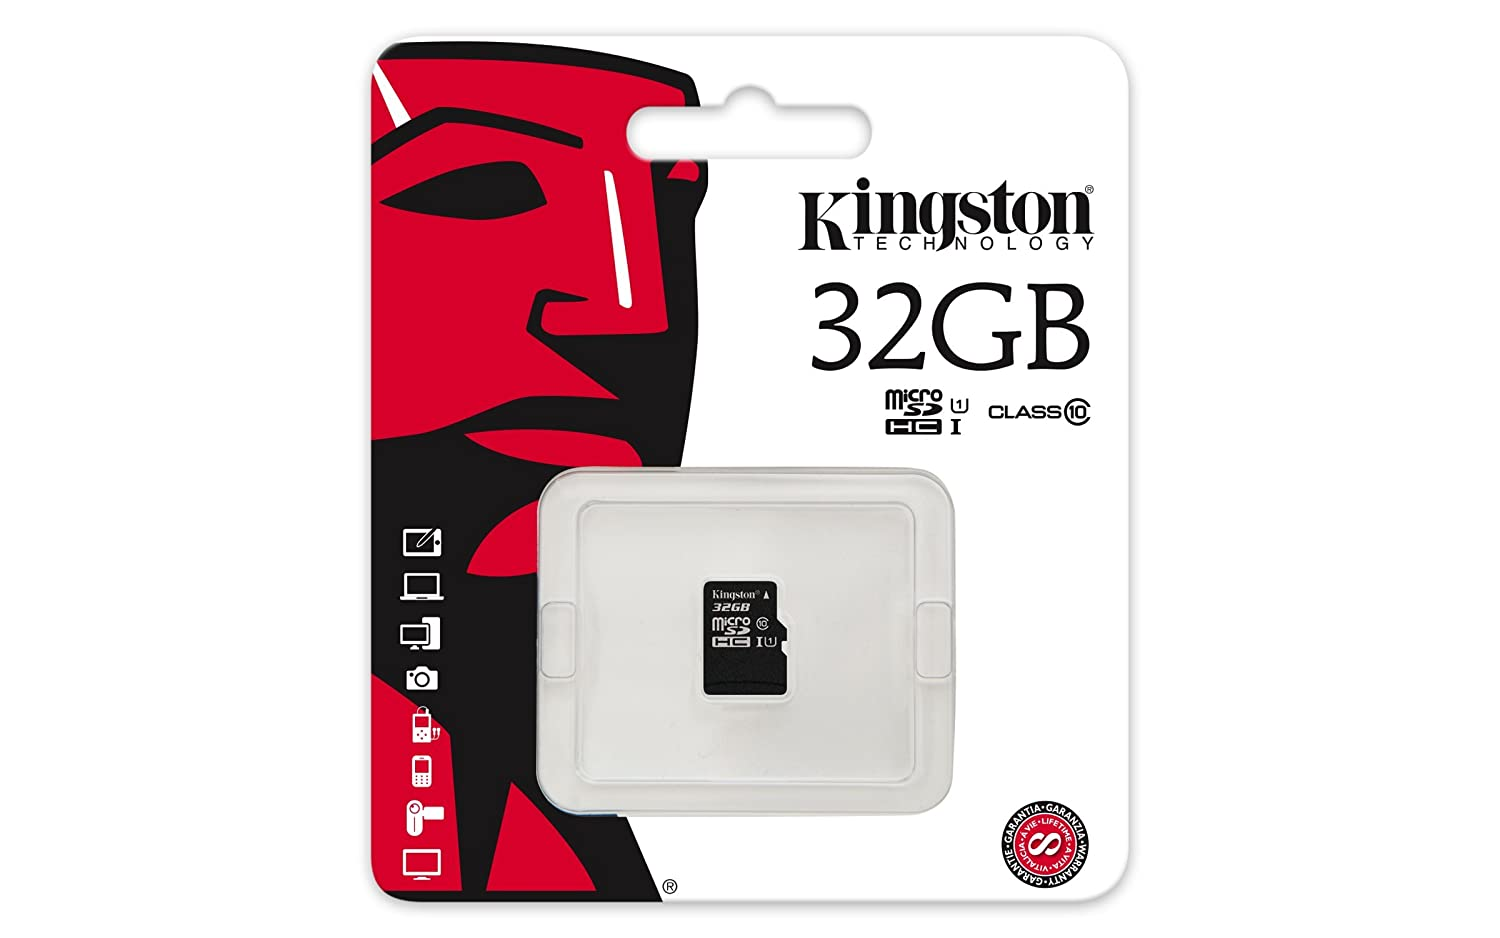 Kingston Digital 32GB Micro SDHC UHS-I Class 10 Industrial Temp Card (SDCIT/32GBSP)